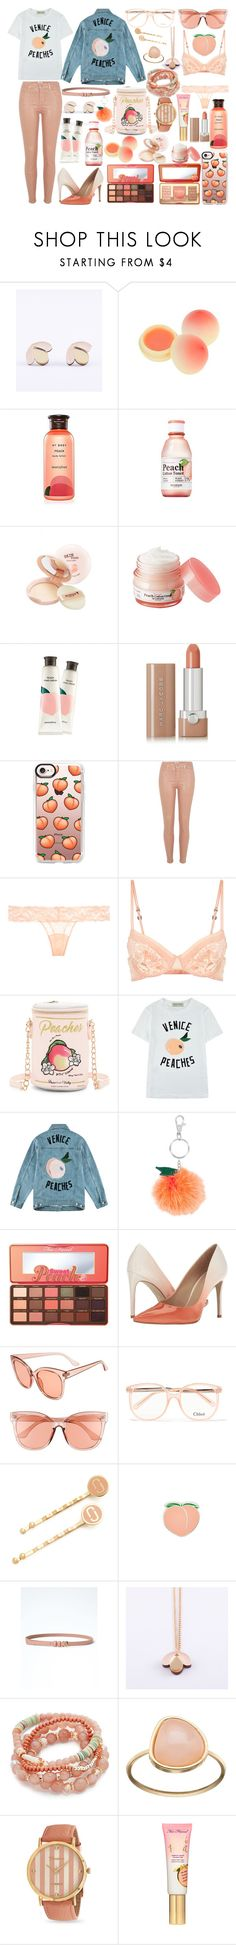 """Peach perfect"" by pessky ❤ liked on Polyvore featuring Wolf & Moon, TONYMOLY, Innisfree, Skinfood, Marc Jacobs, Casetify, River Island, La Perla, Betsey Johnson and Être Cécile"